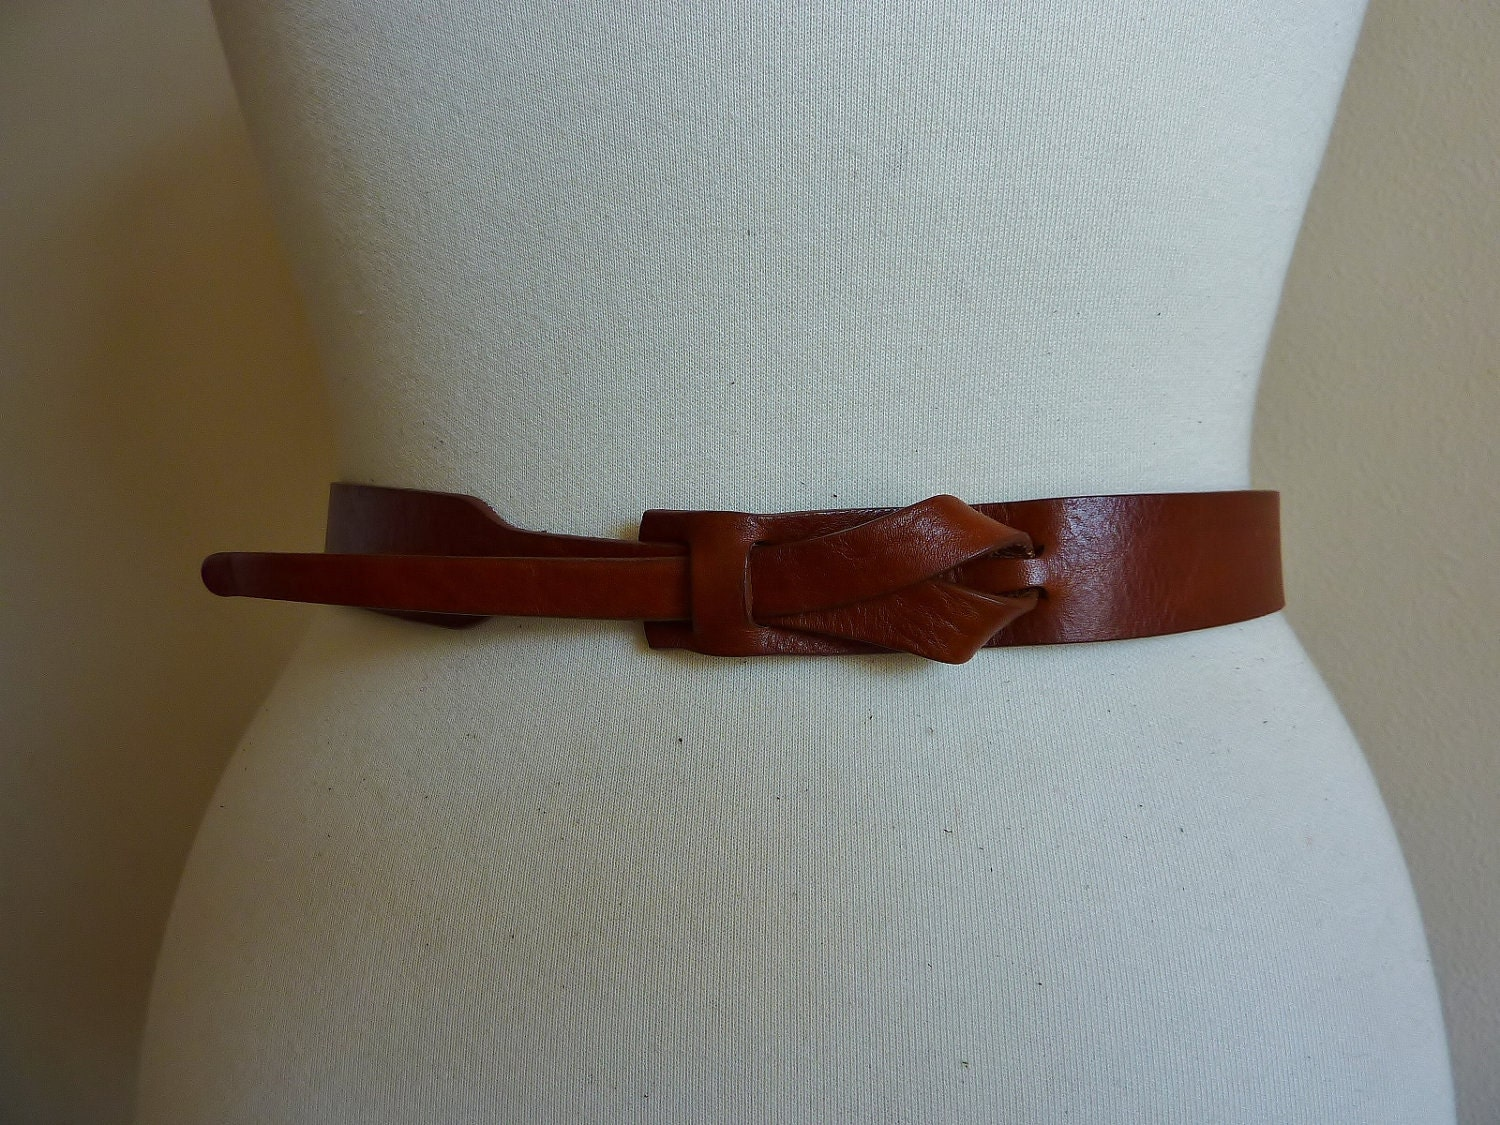 Skinny Leather Belt in Camel by Muse 1 inch by MuseBelts on Etsy from etsy.com